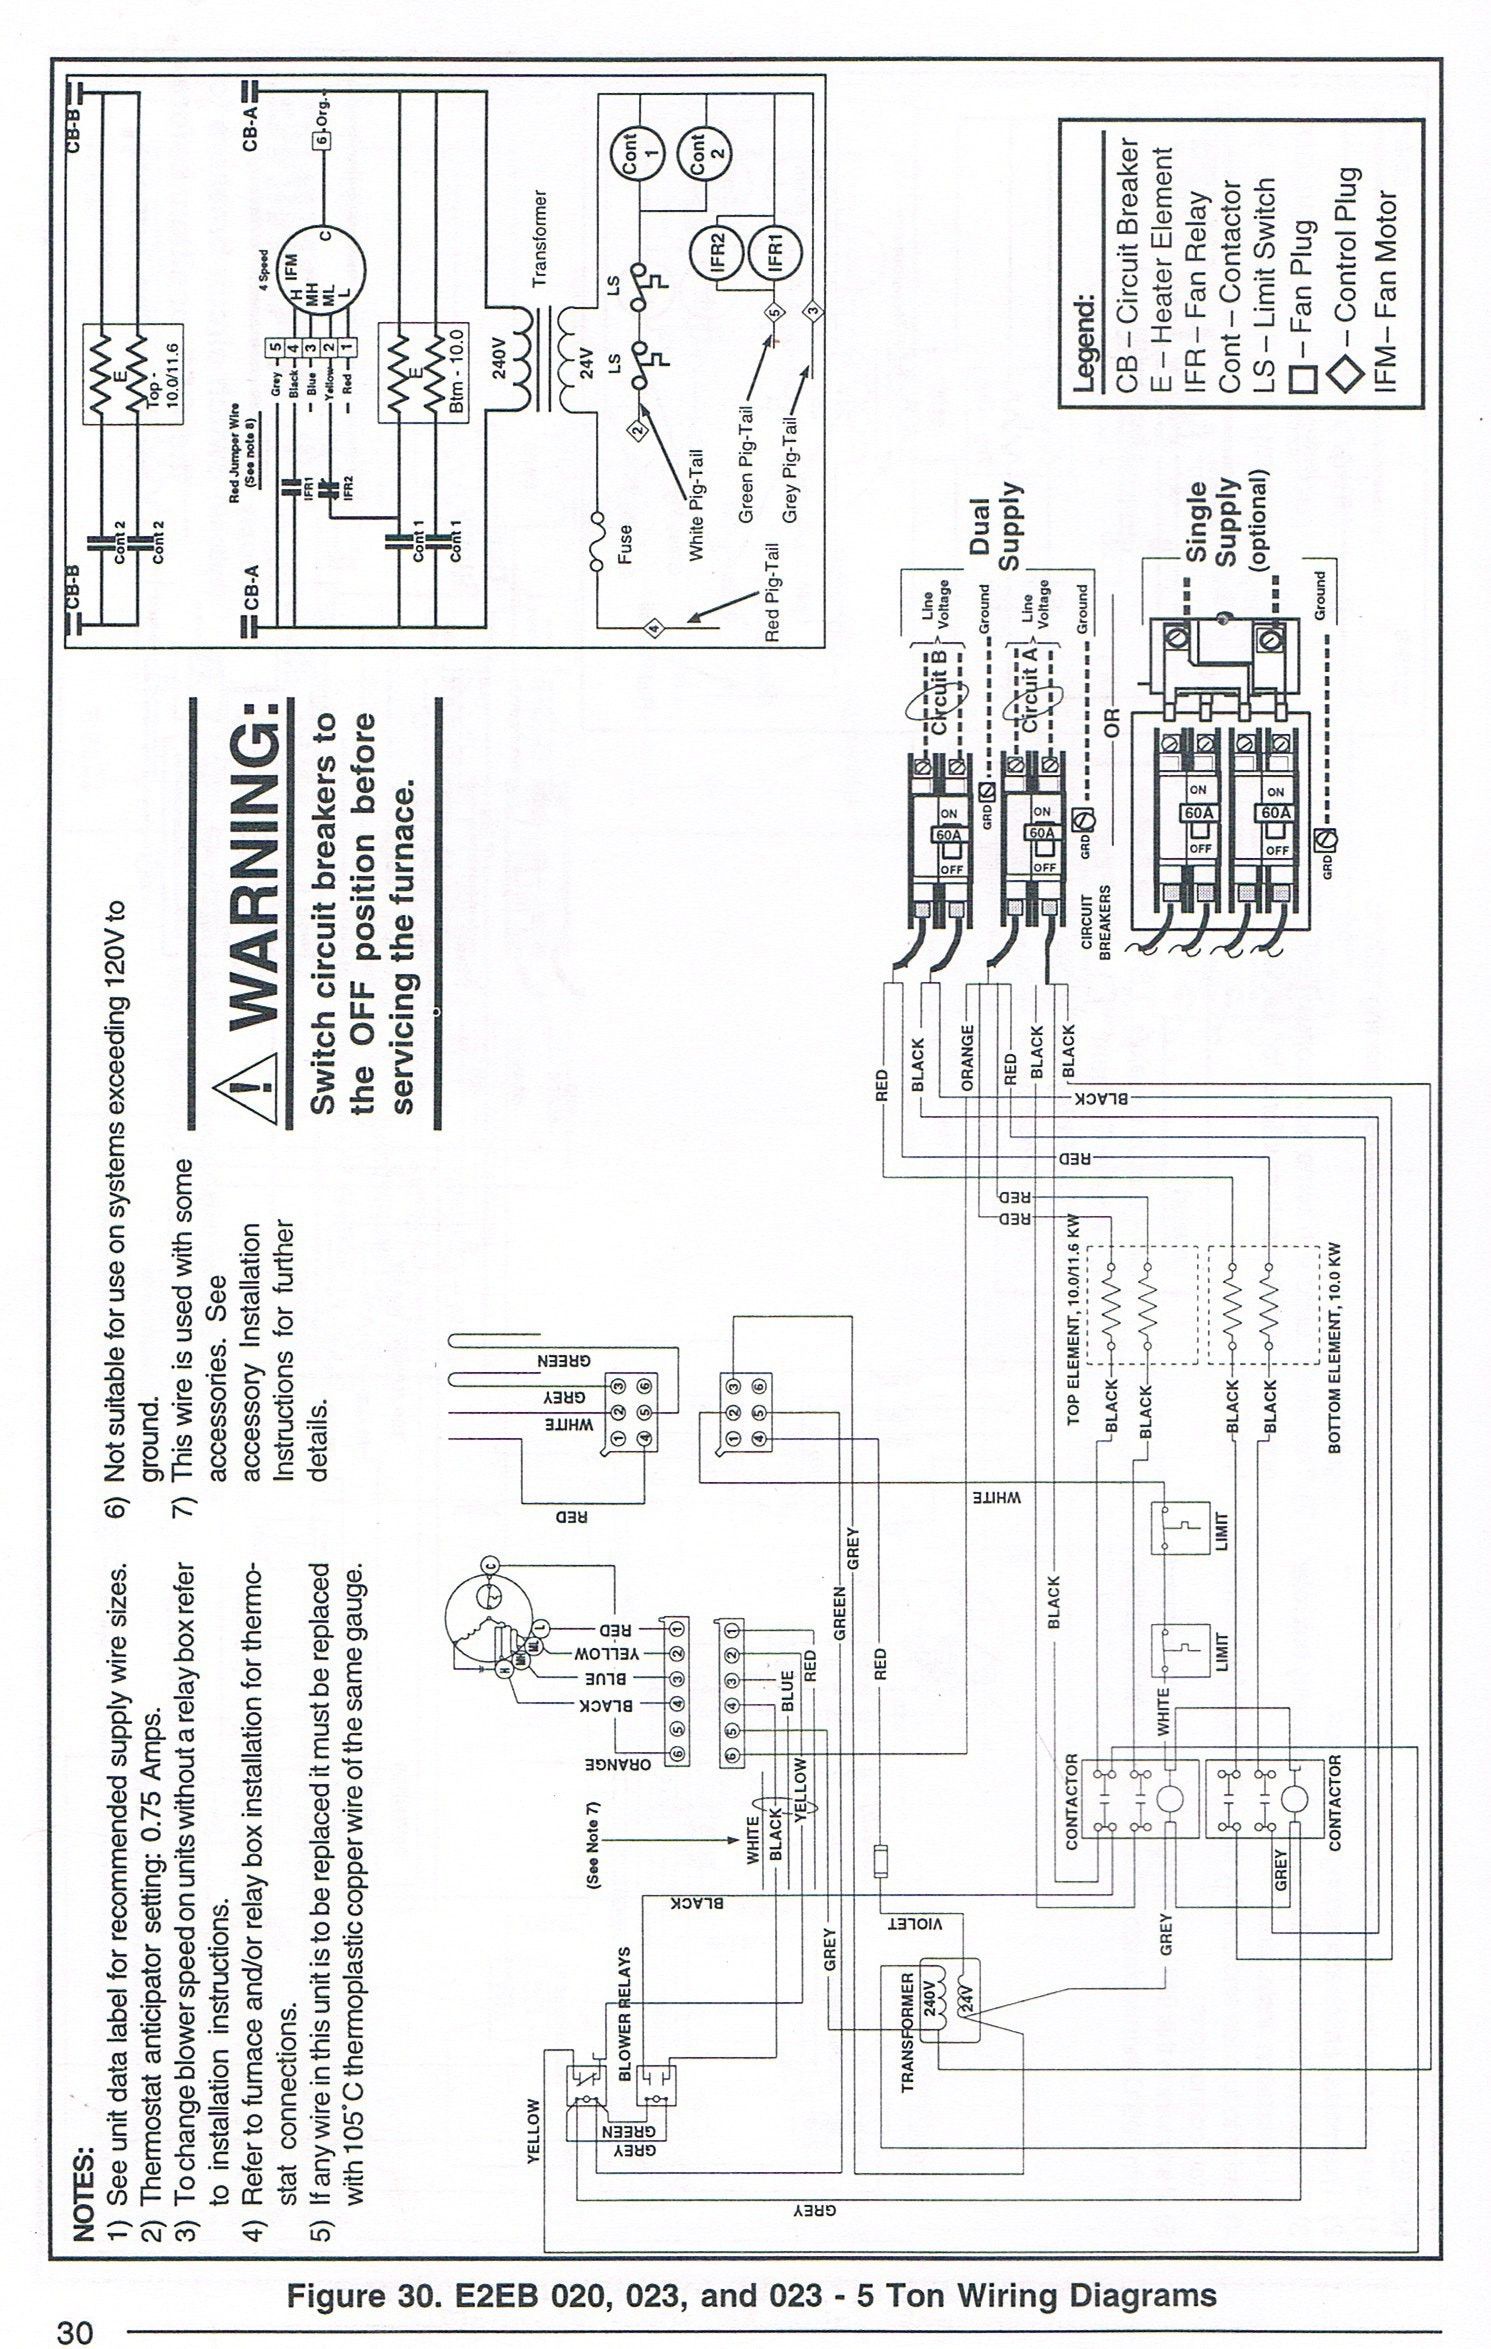 35 Nordyne Electric Furnace Wiring Diagram